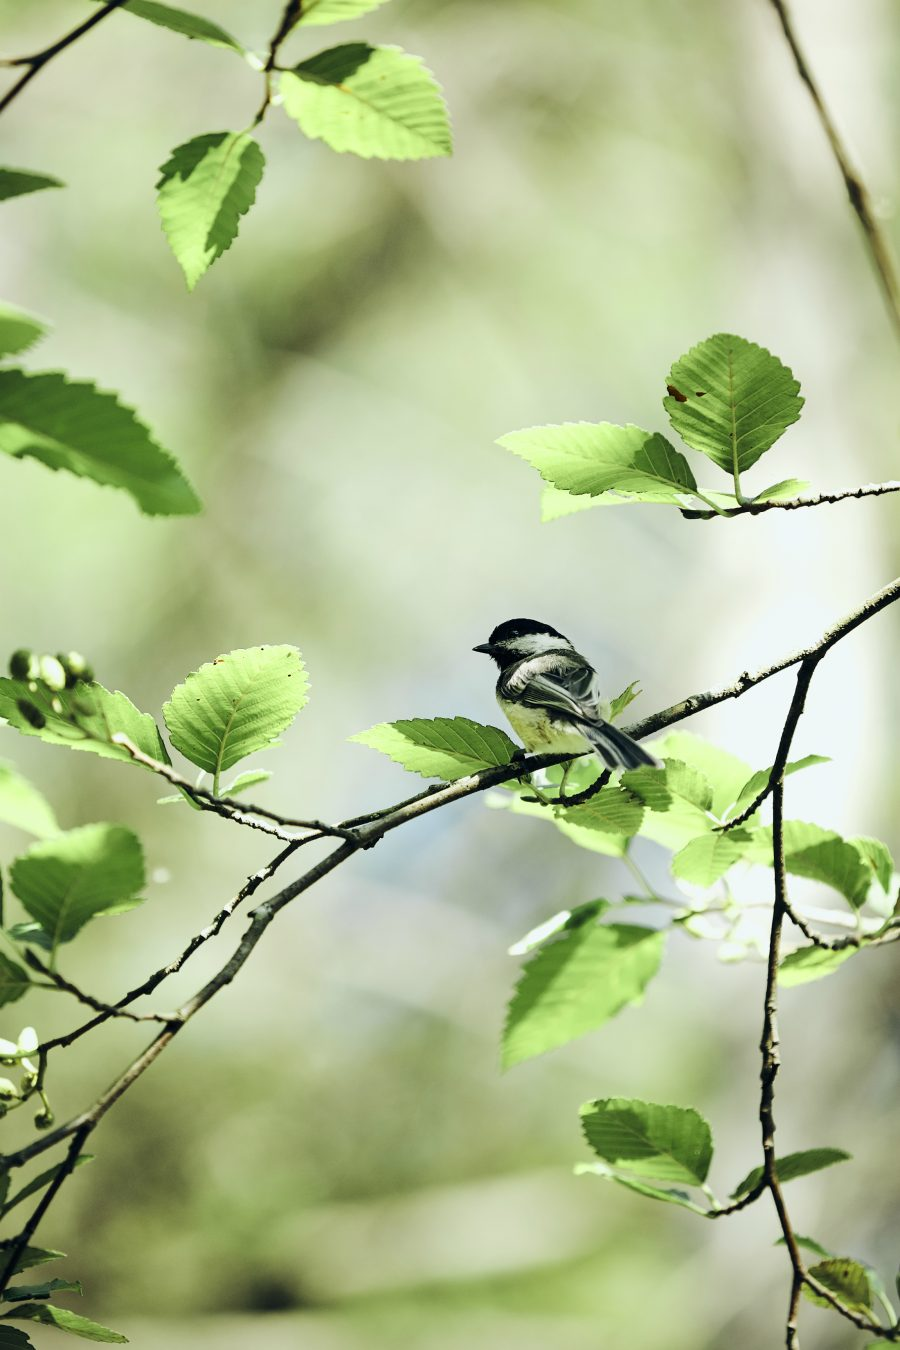 birdwatching in the lower mainland